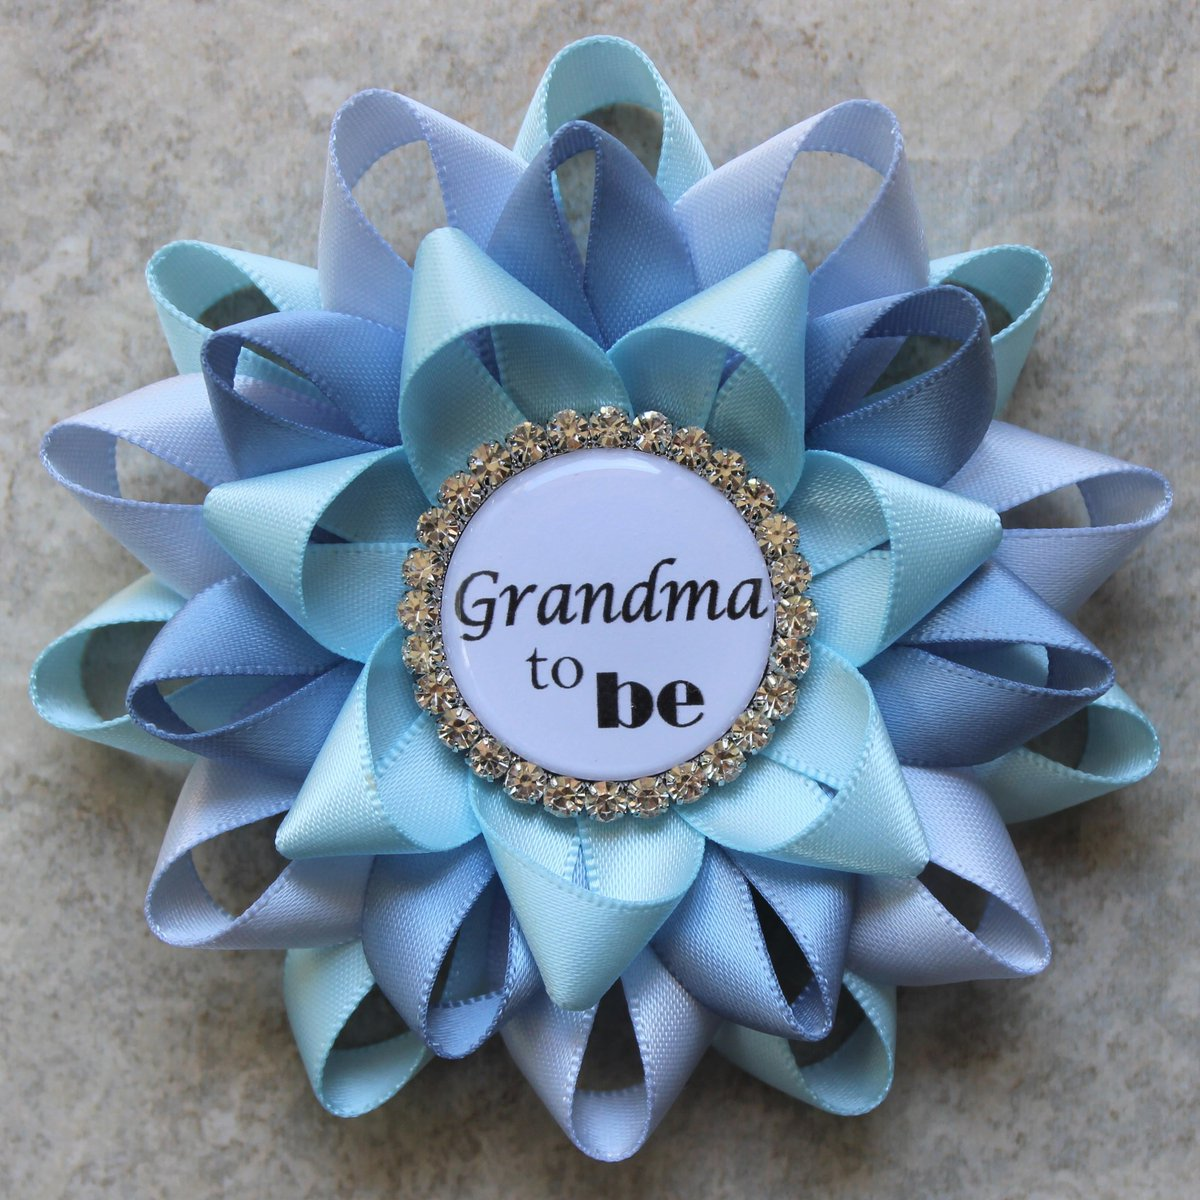 Baby Boy Shower, Shades of Blue Baby Shower Decorations, Baby Shower Pins, Grandma to be, Mommy to be, Light Blue, Ice Blue, French Blue  #etsyshop #smallbiz #ecommerce #shopping #shopsmall #etsy #style #gifts